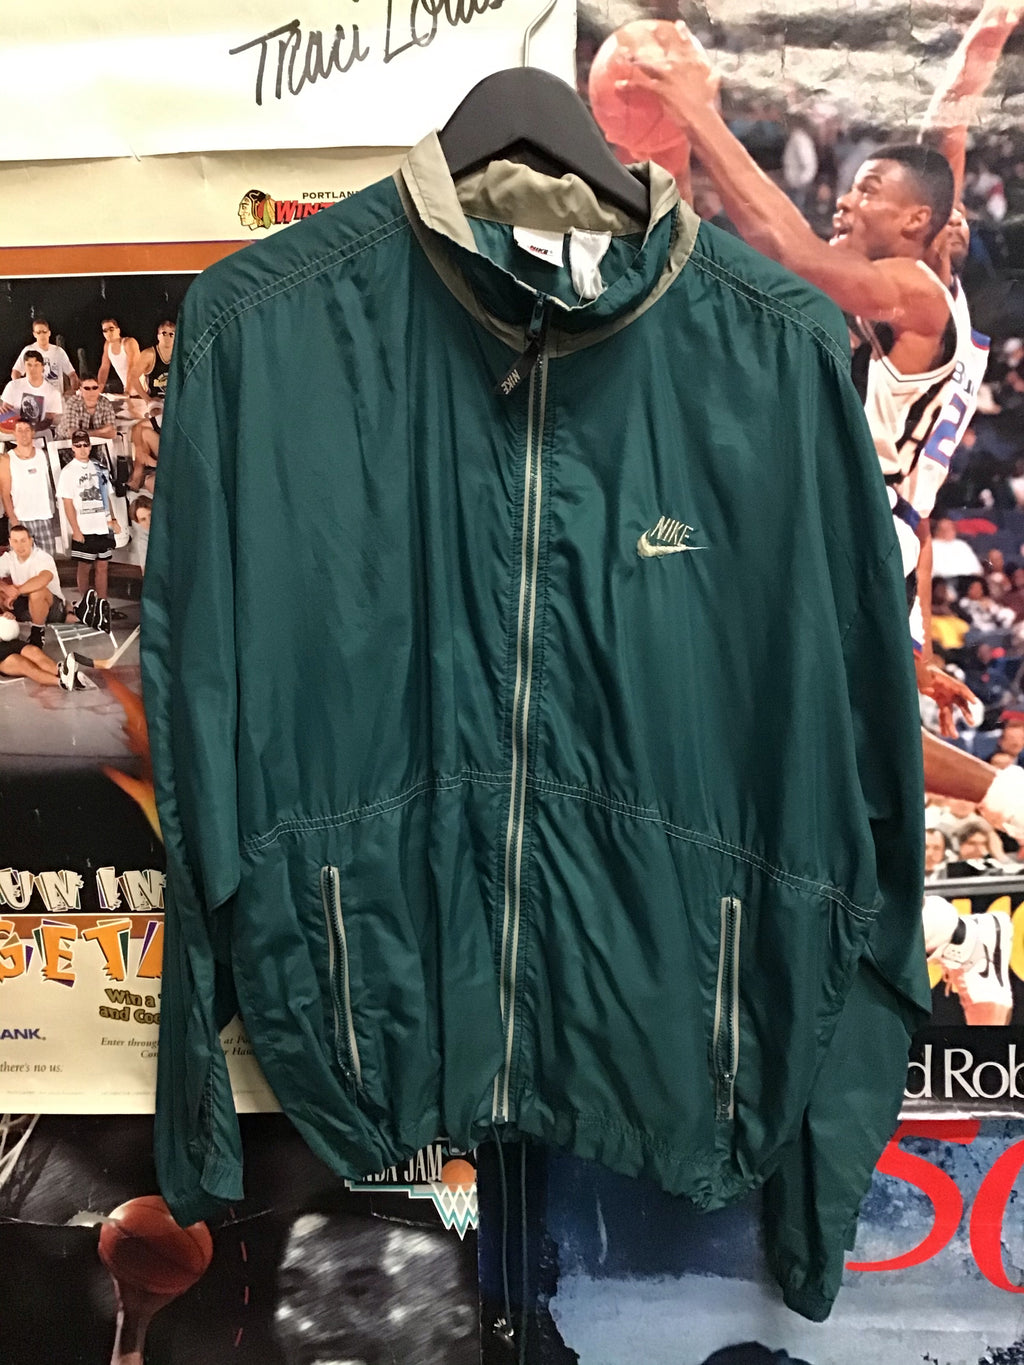 Nike Windbreaker Medium - Decades of dope